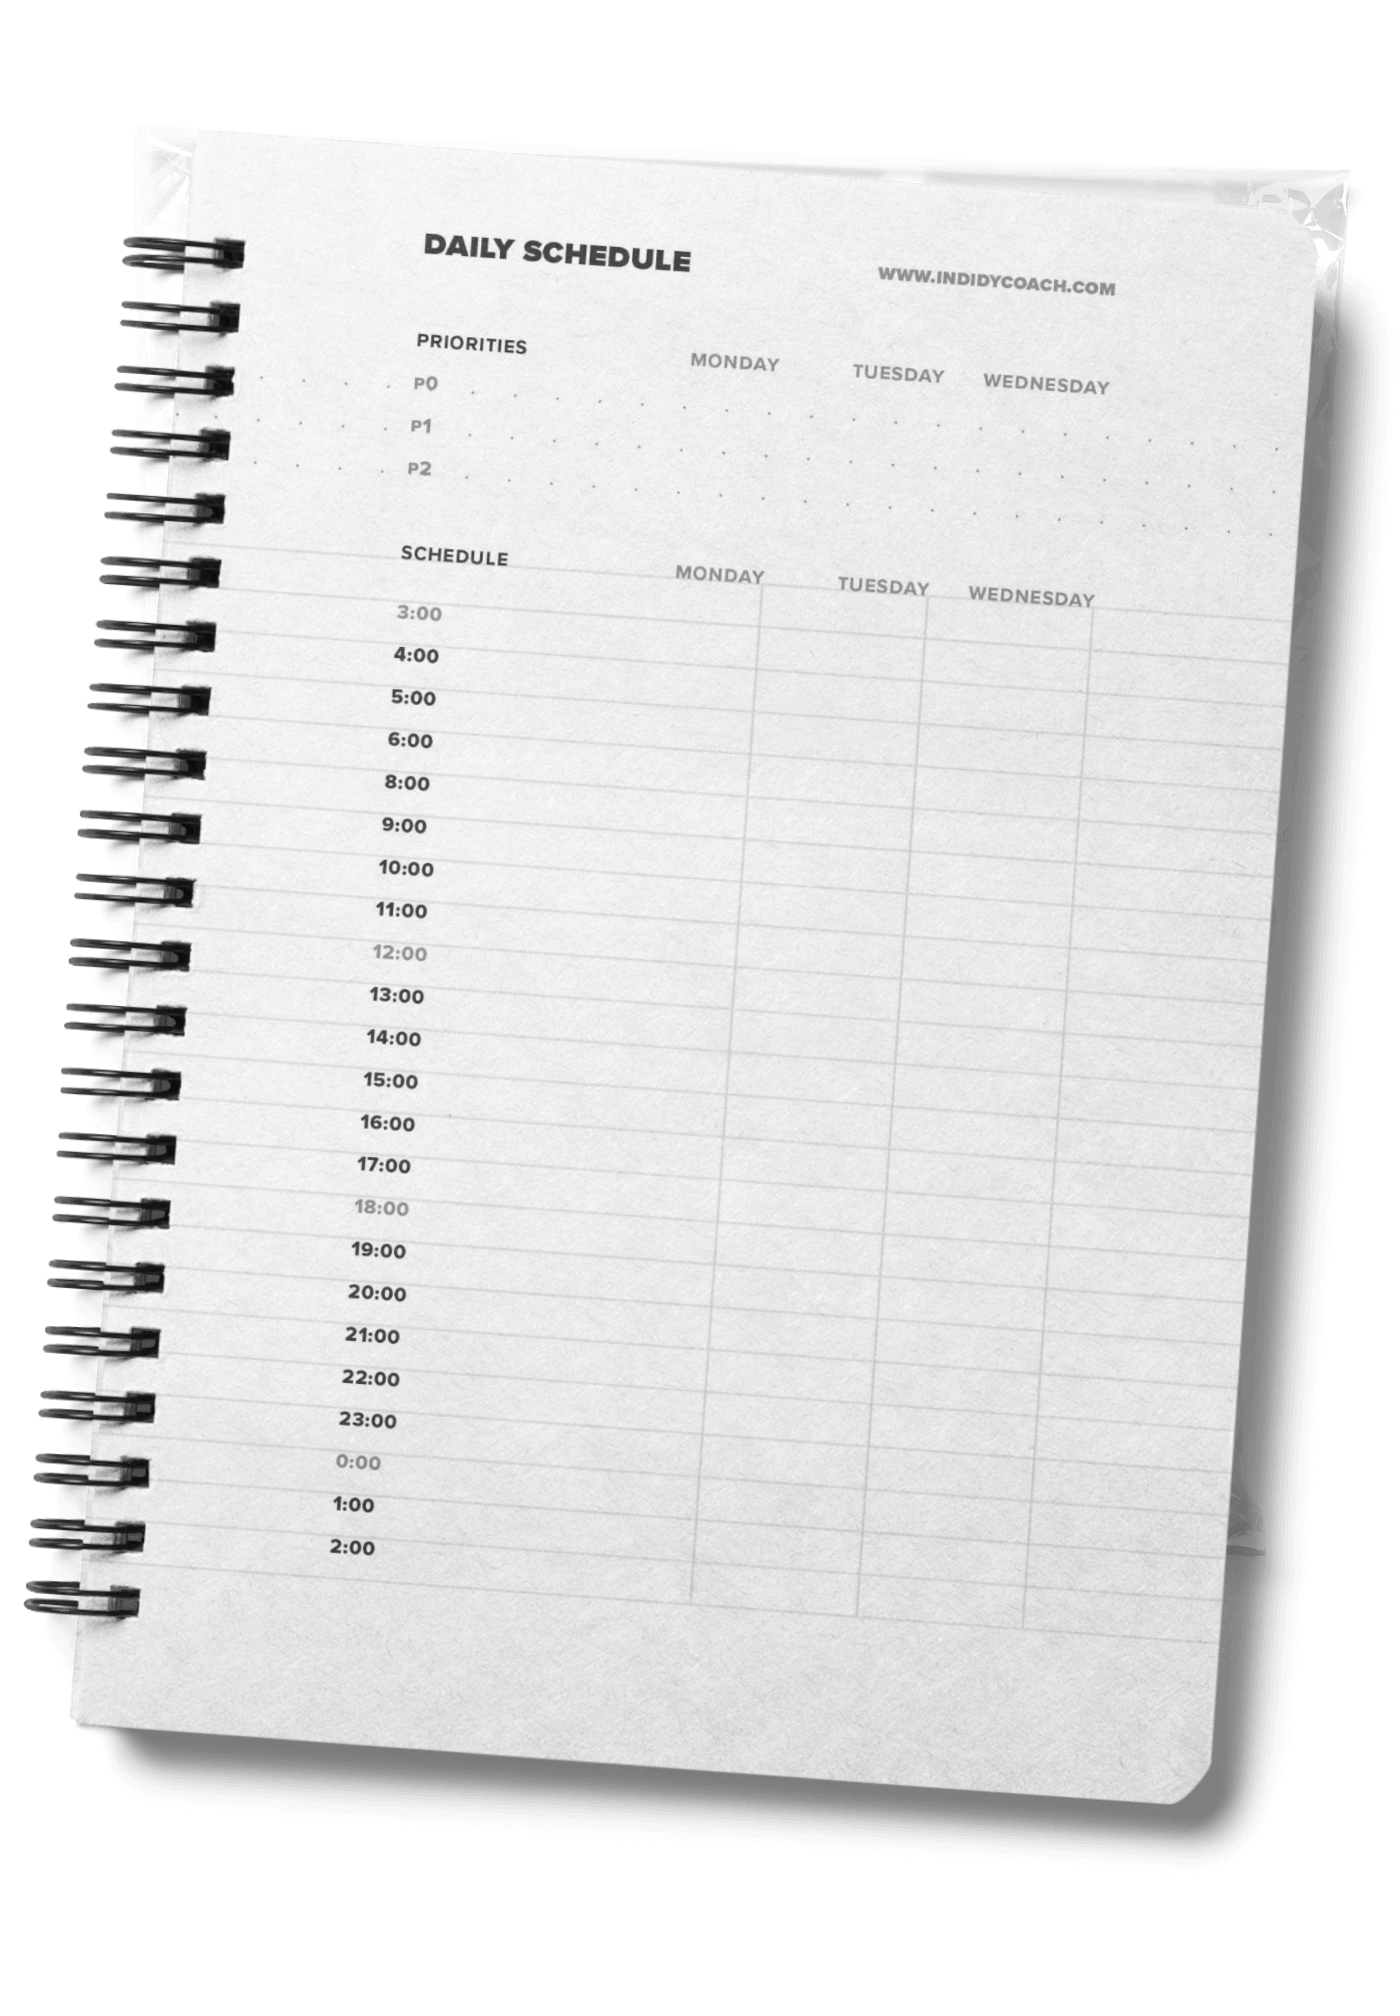 Daily schedule page, displayed on a spiral notebook.